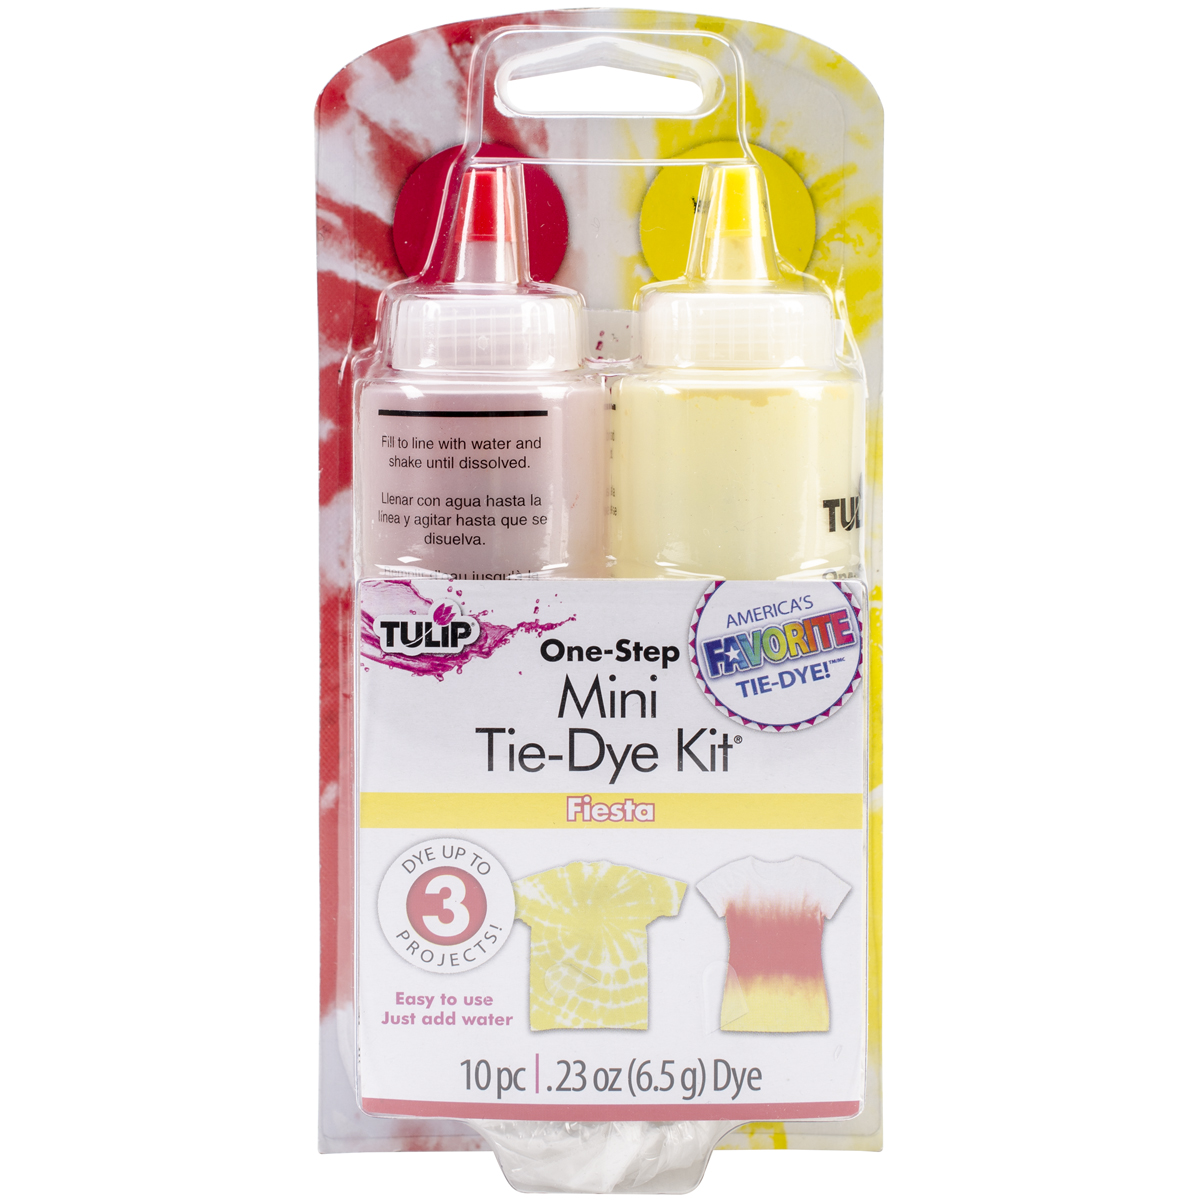 Tulip One-Step Mini Tie-Dye Kit-Fiesta